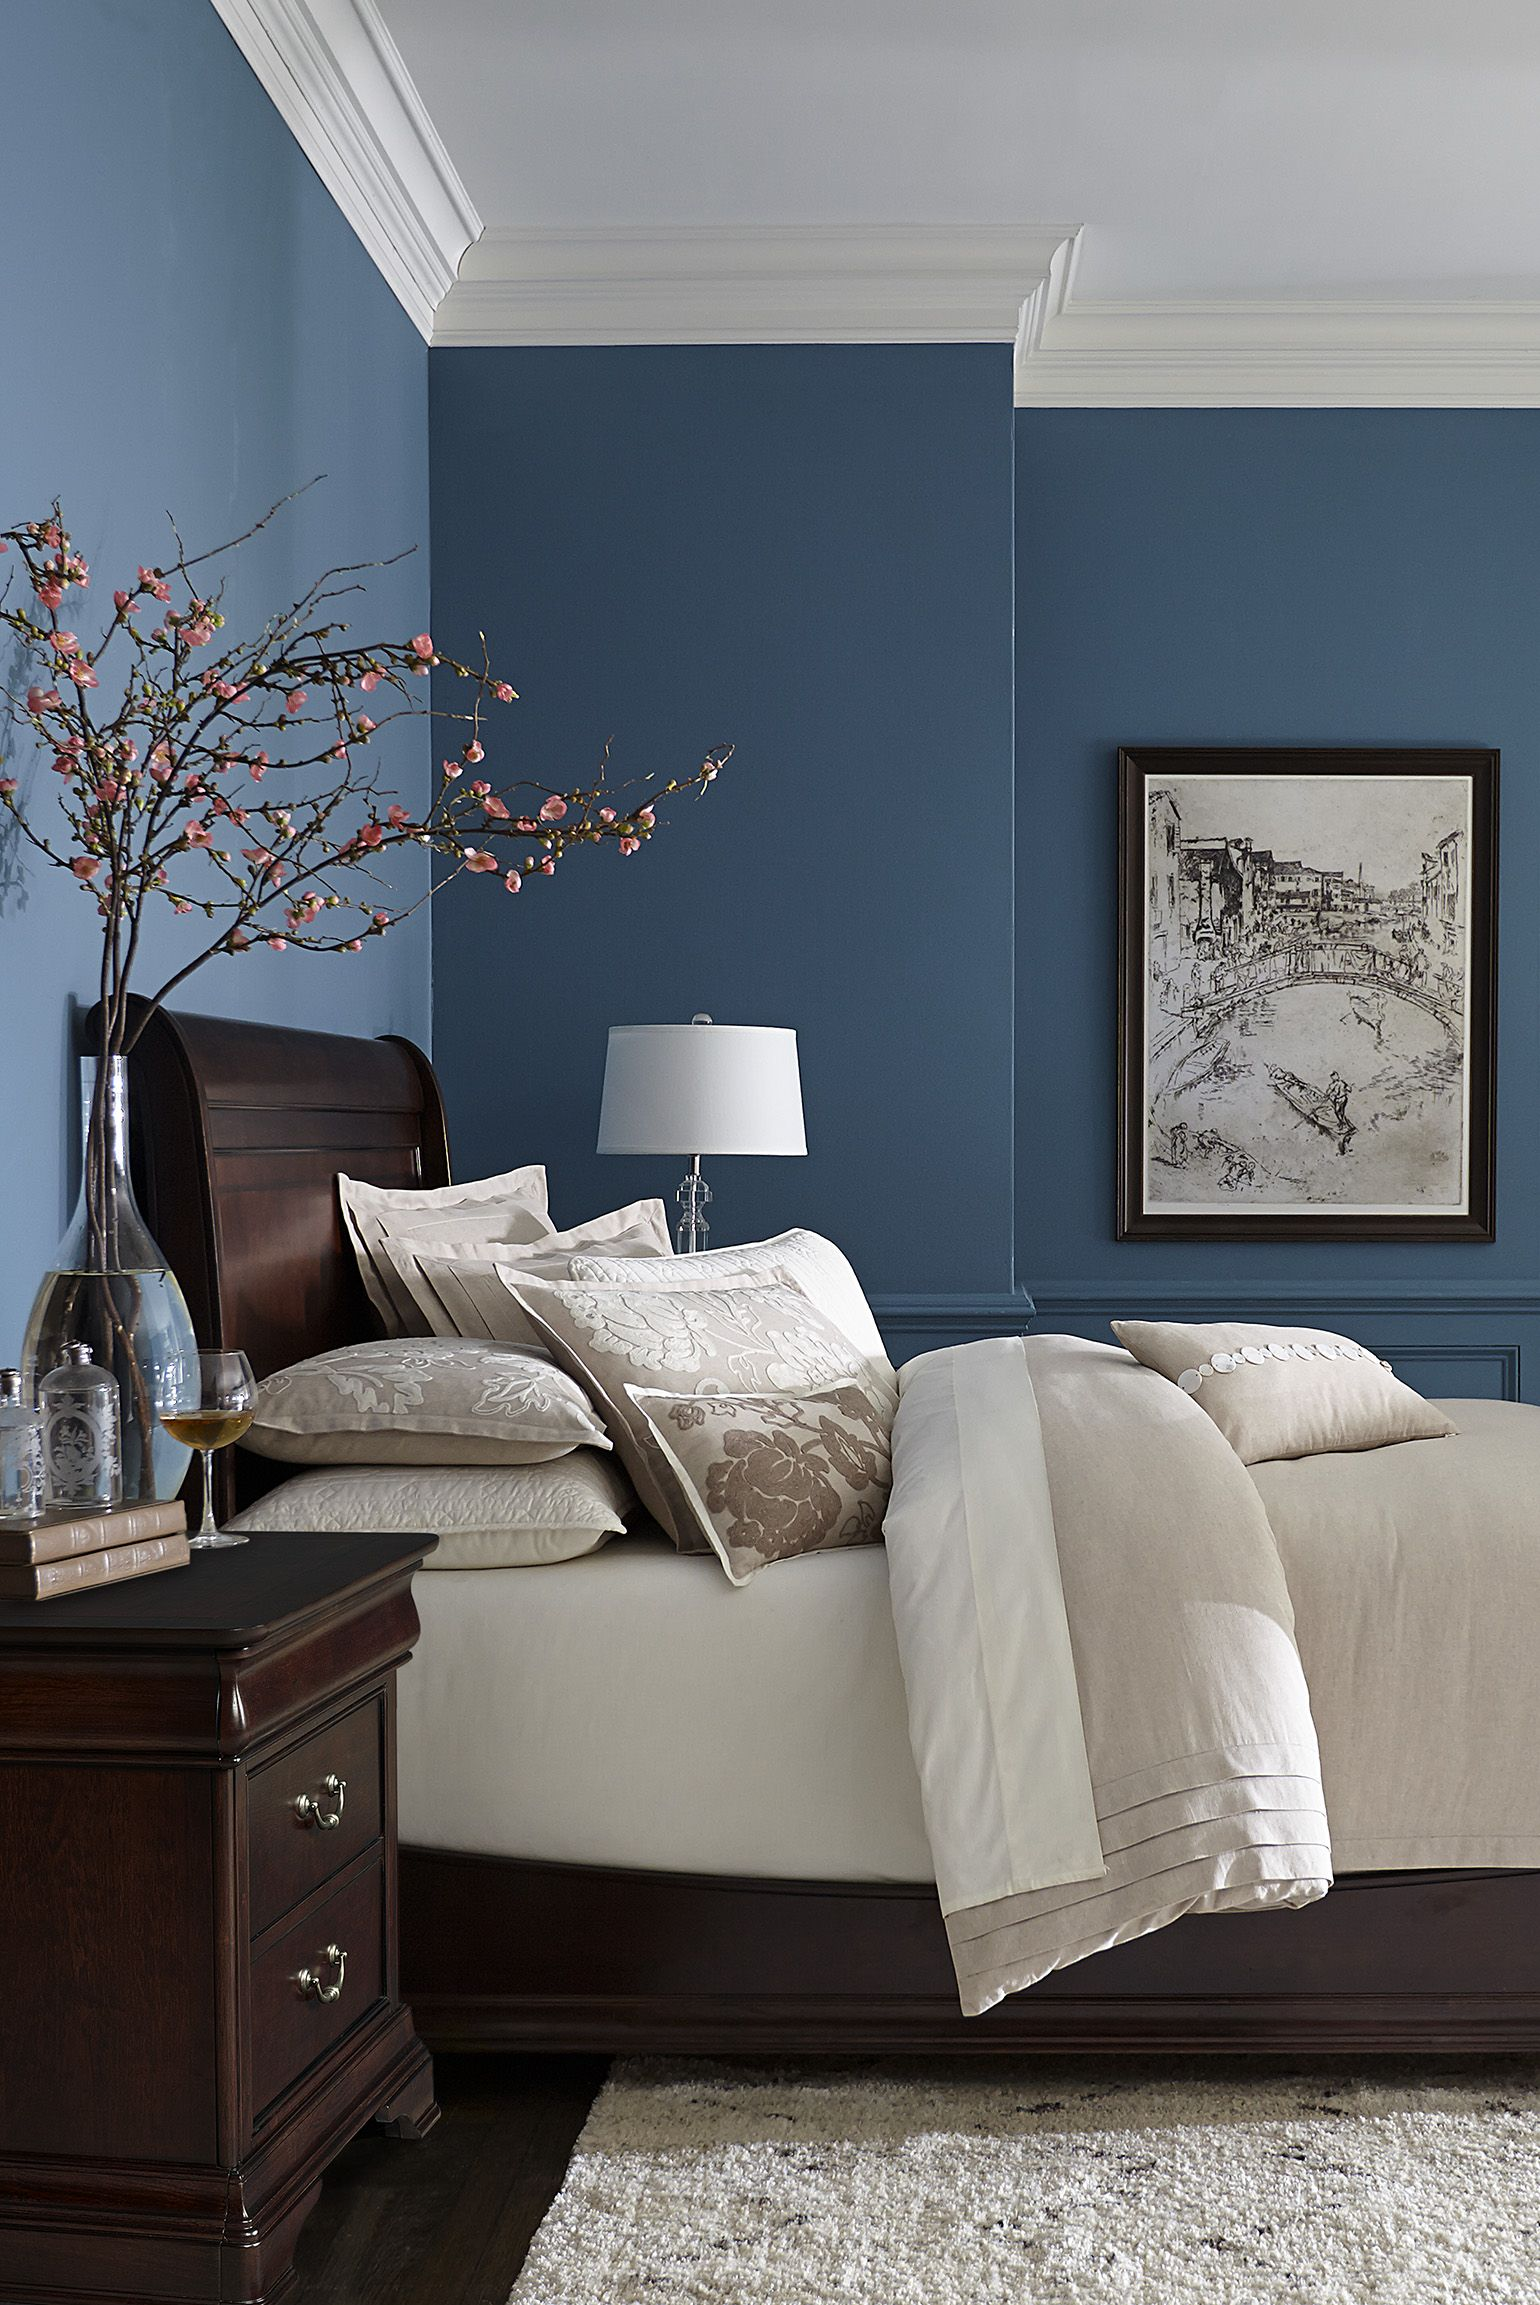 Brown wall colors for bedroom - Made With Hardwood Solids With Cherry Veneers And Walnut Inlays Our Orleans Bedroom Collection Brings Blue Bedroom Wall Colorsmaster